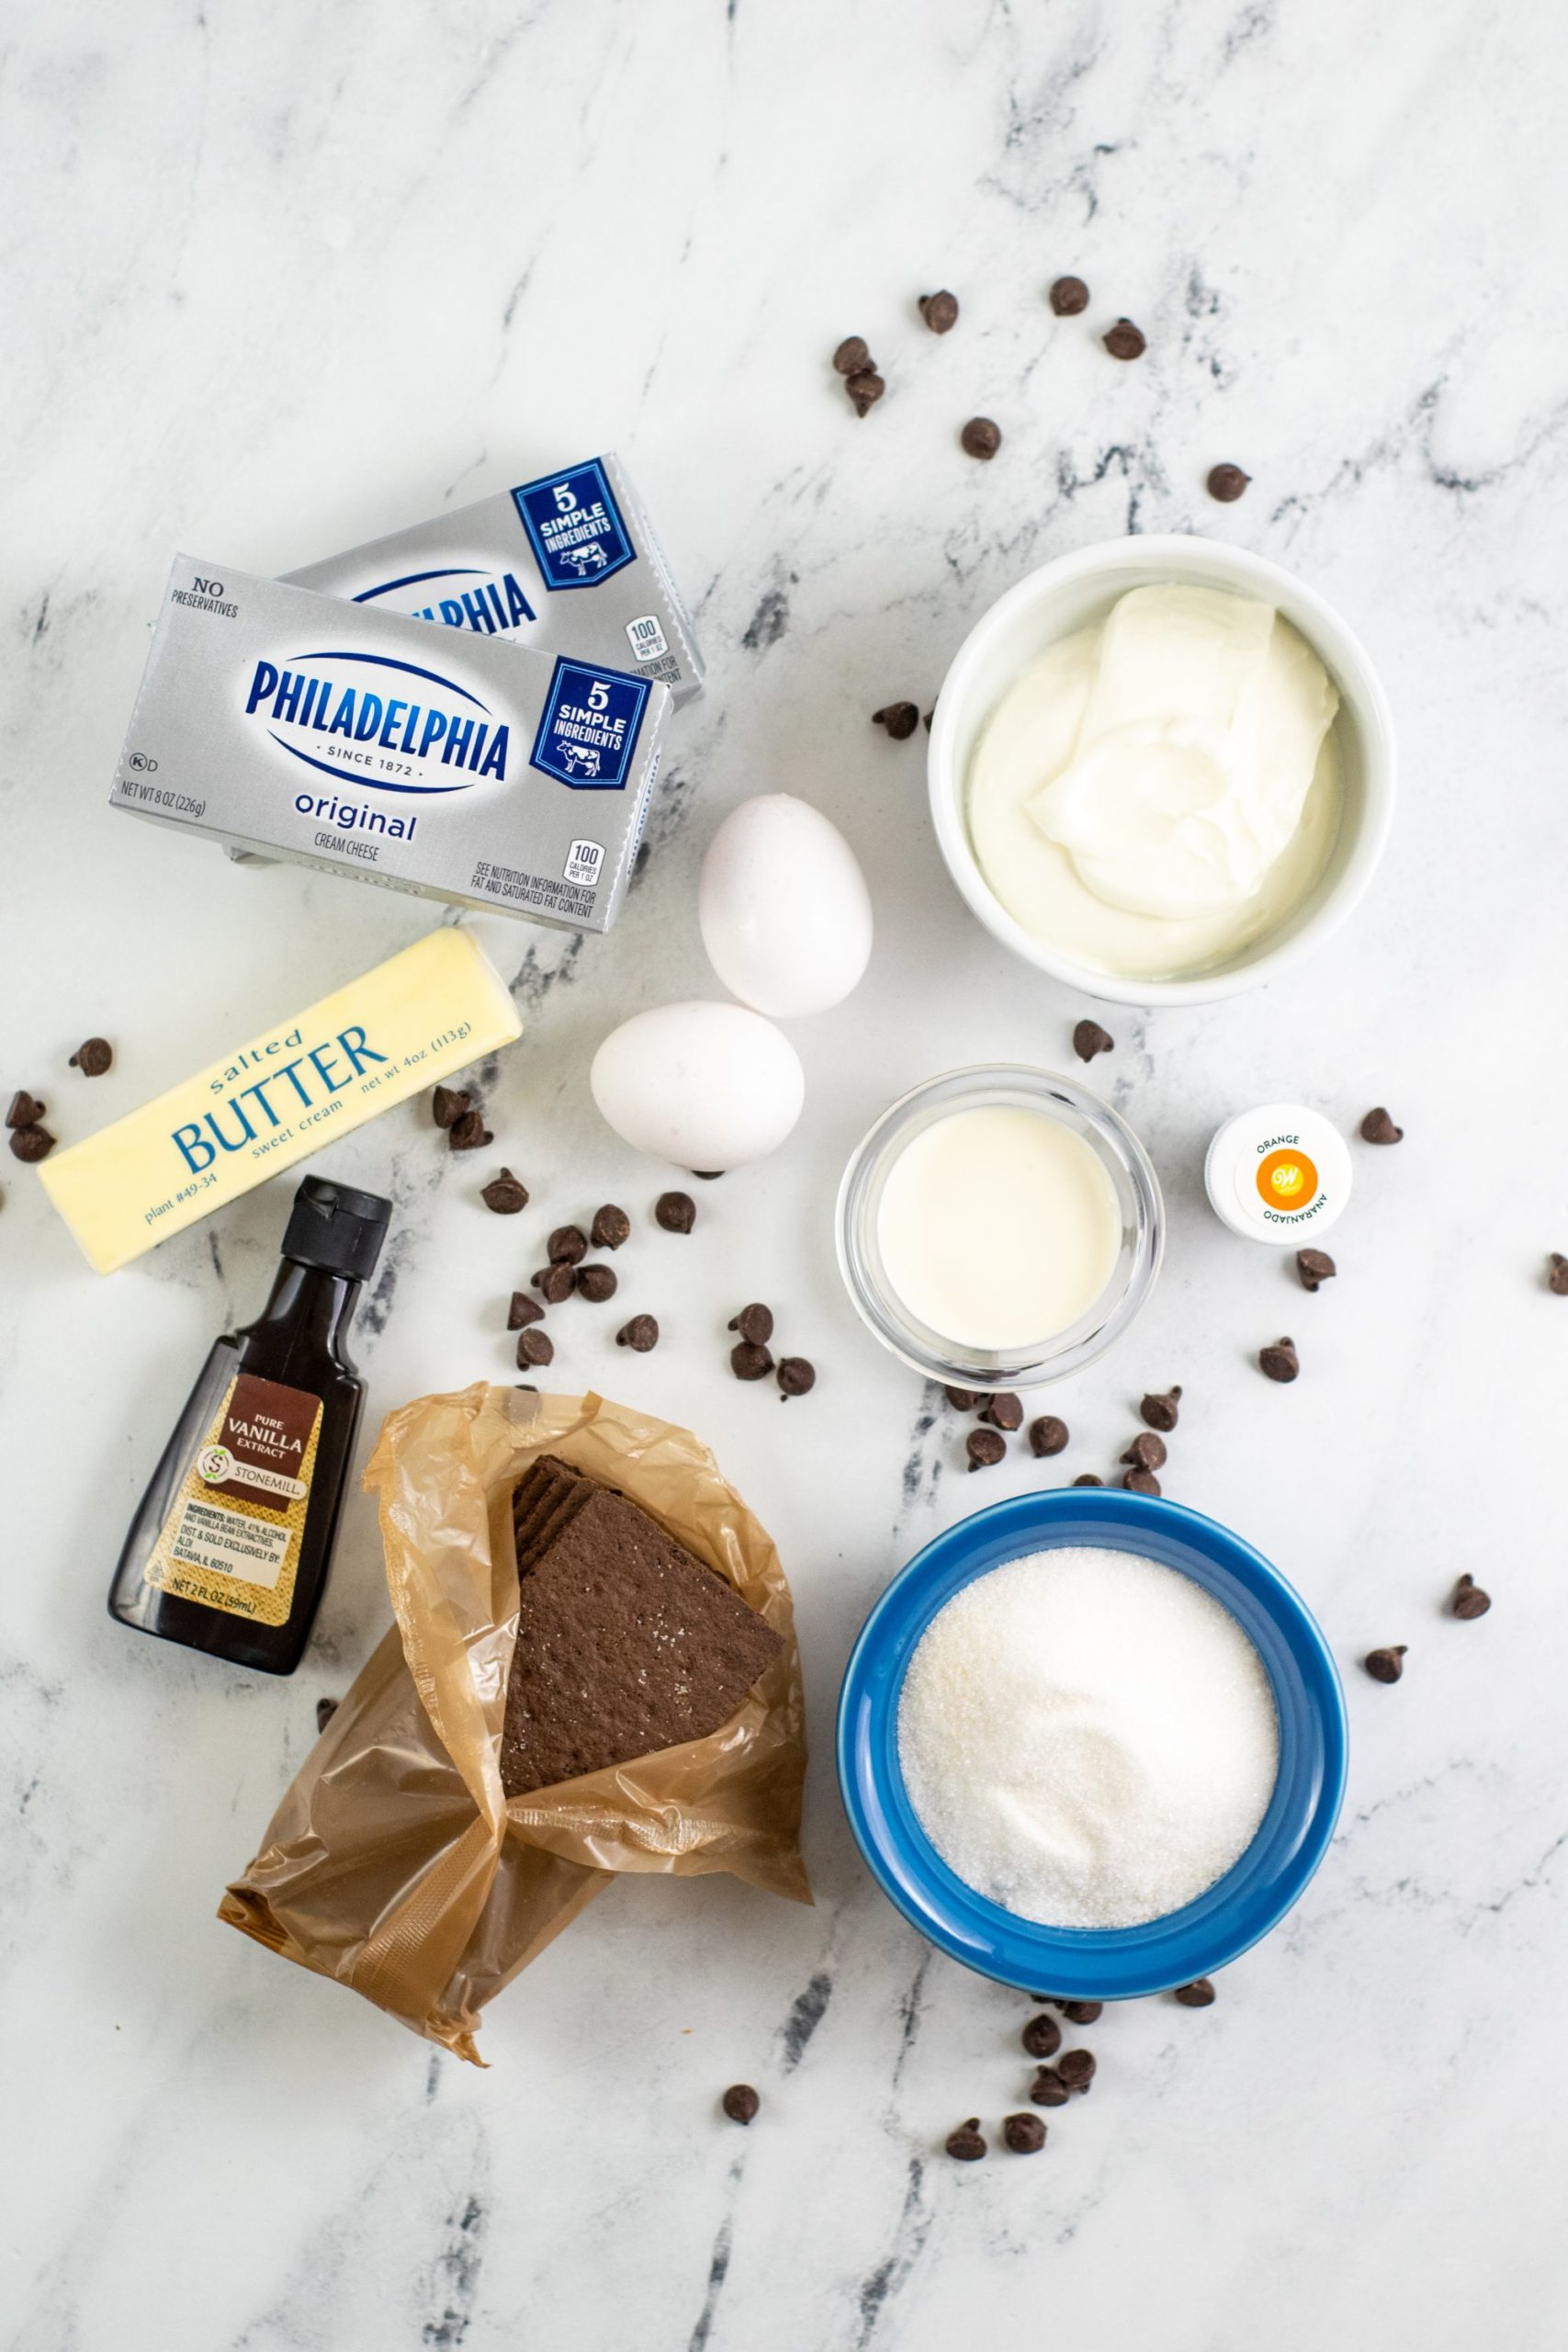 Butter, cream cheese, eggs, vanilla, flour and other ingredients needed to make cheesecake.